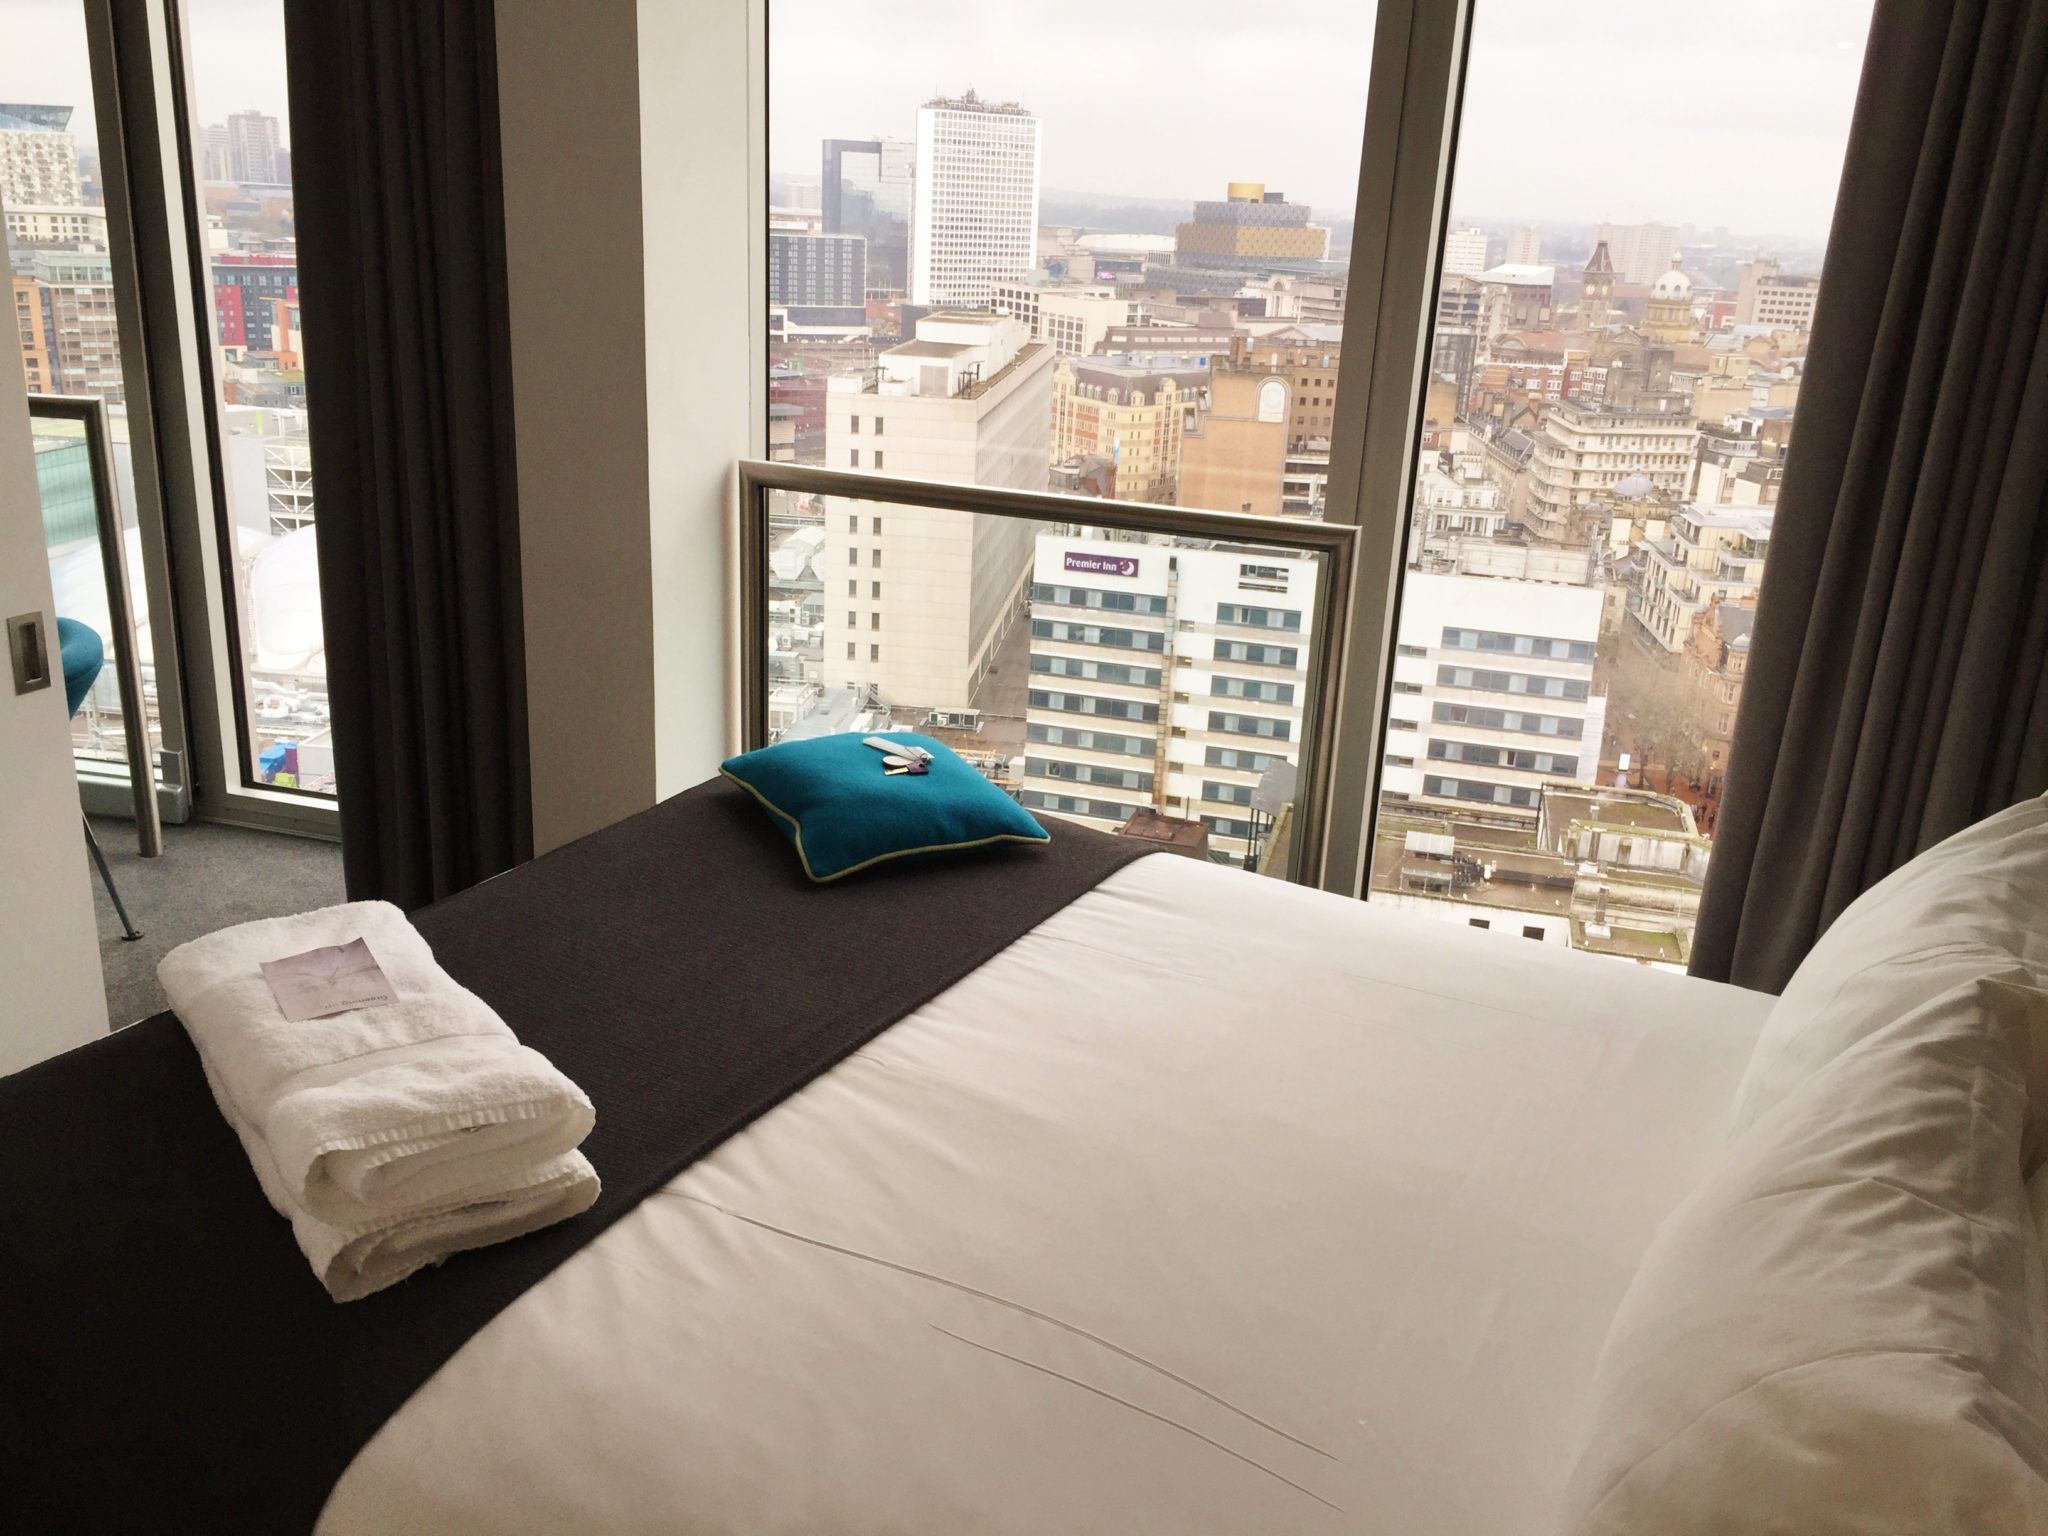 Staying Cool Apartments Birmingham Review One Bedroom ...